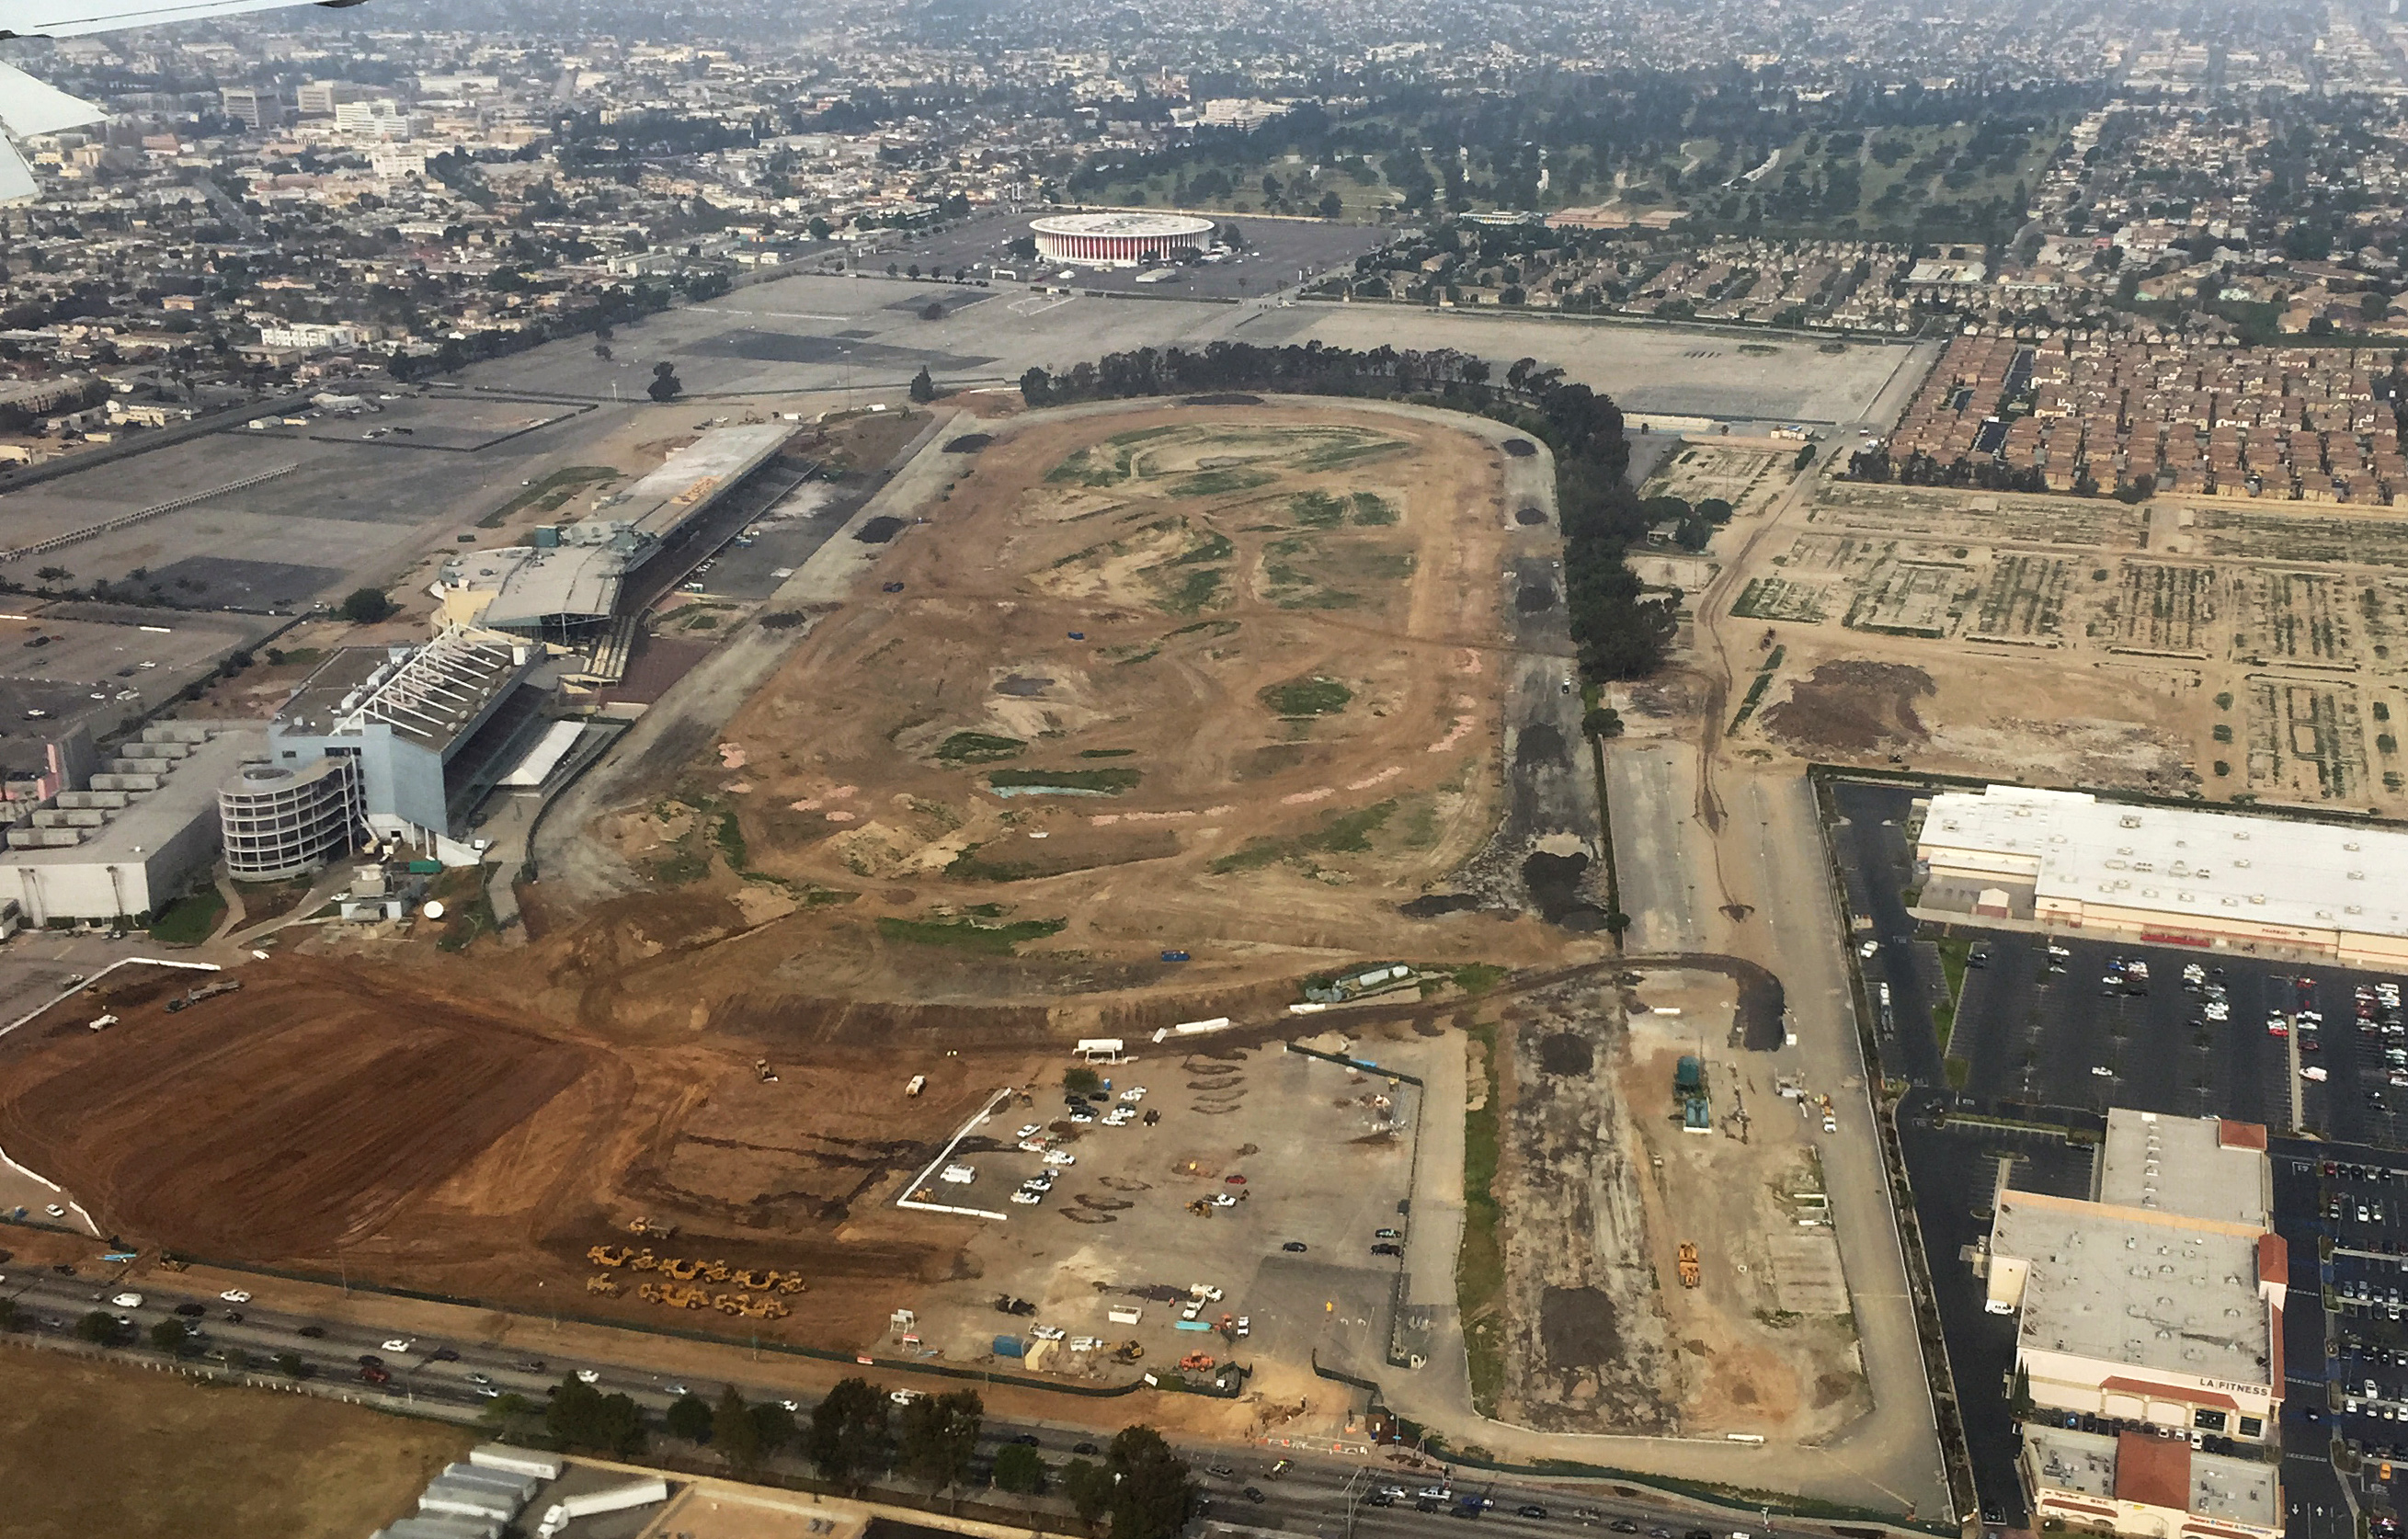 FILE - In this Feb. 20, 2015, aerial file photo taken from the window of a commercial airliner, the site of the former Hollywood Park horse-racing track stands in Inglewood, Calif. NFL owners voted Tuesday night, Jan. 12, 2016, to allow the St. Louis Rams